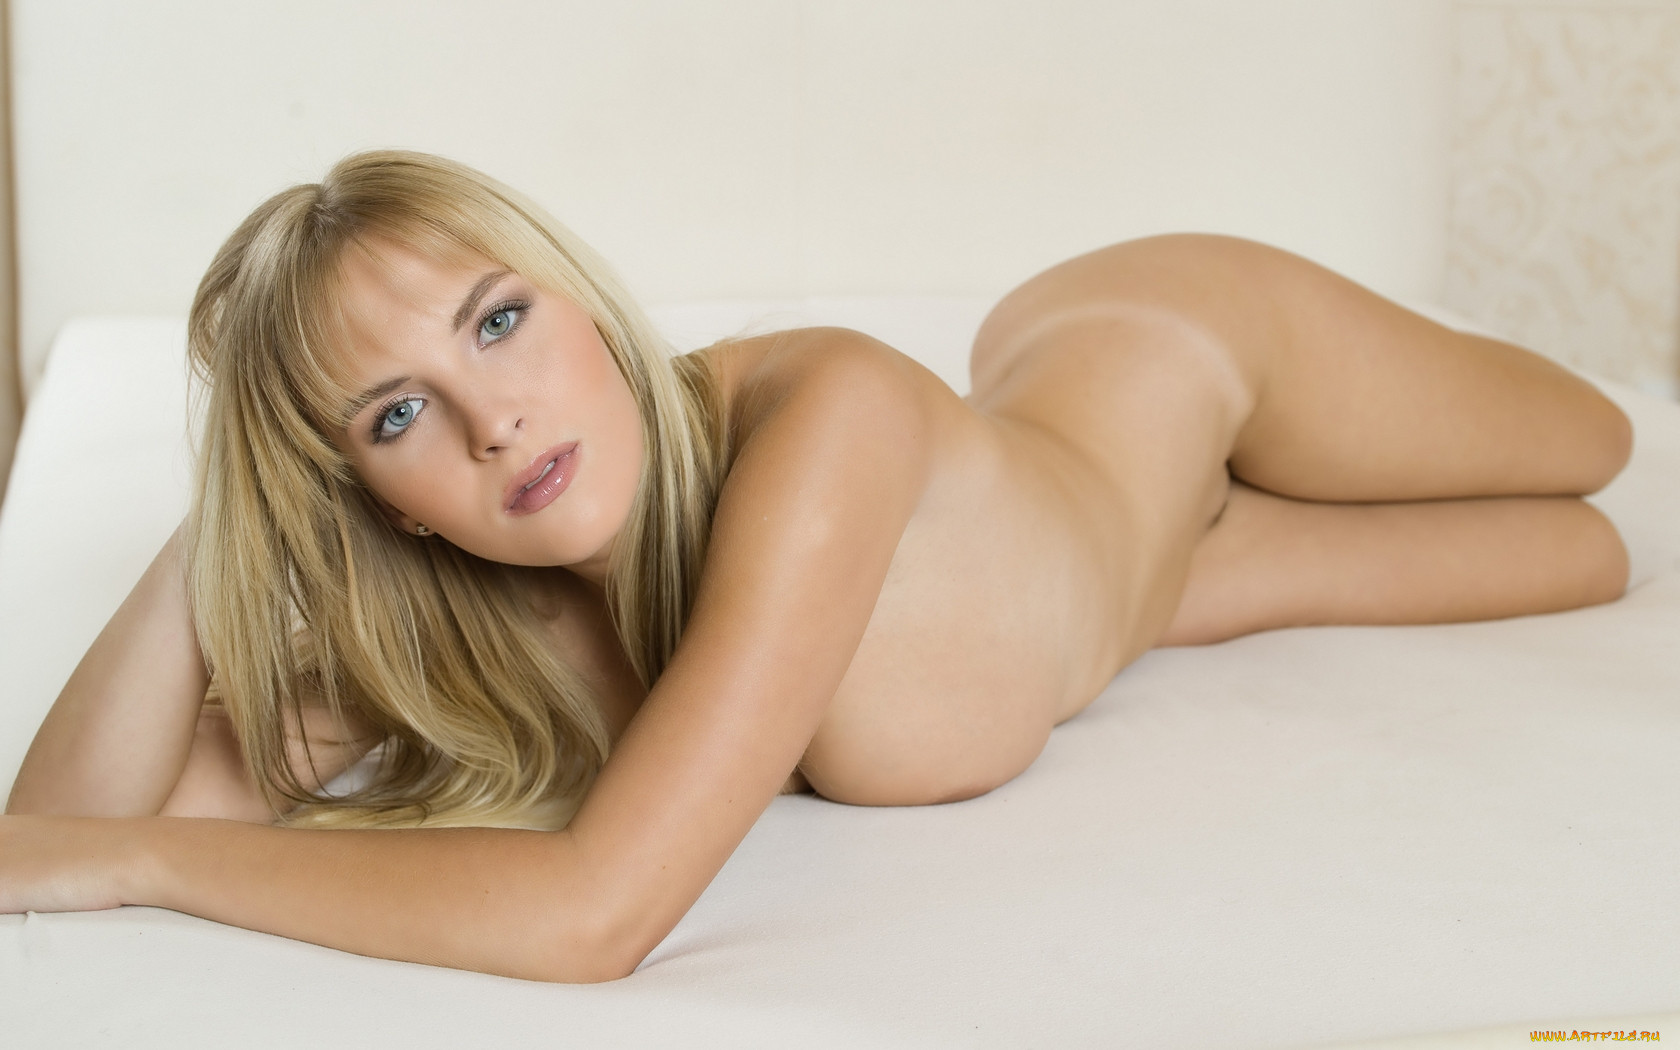 Sexy Naked Blonde Pics